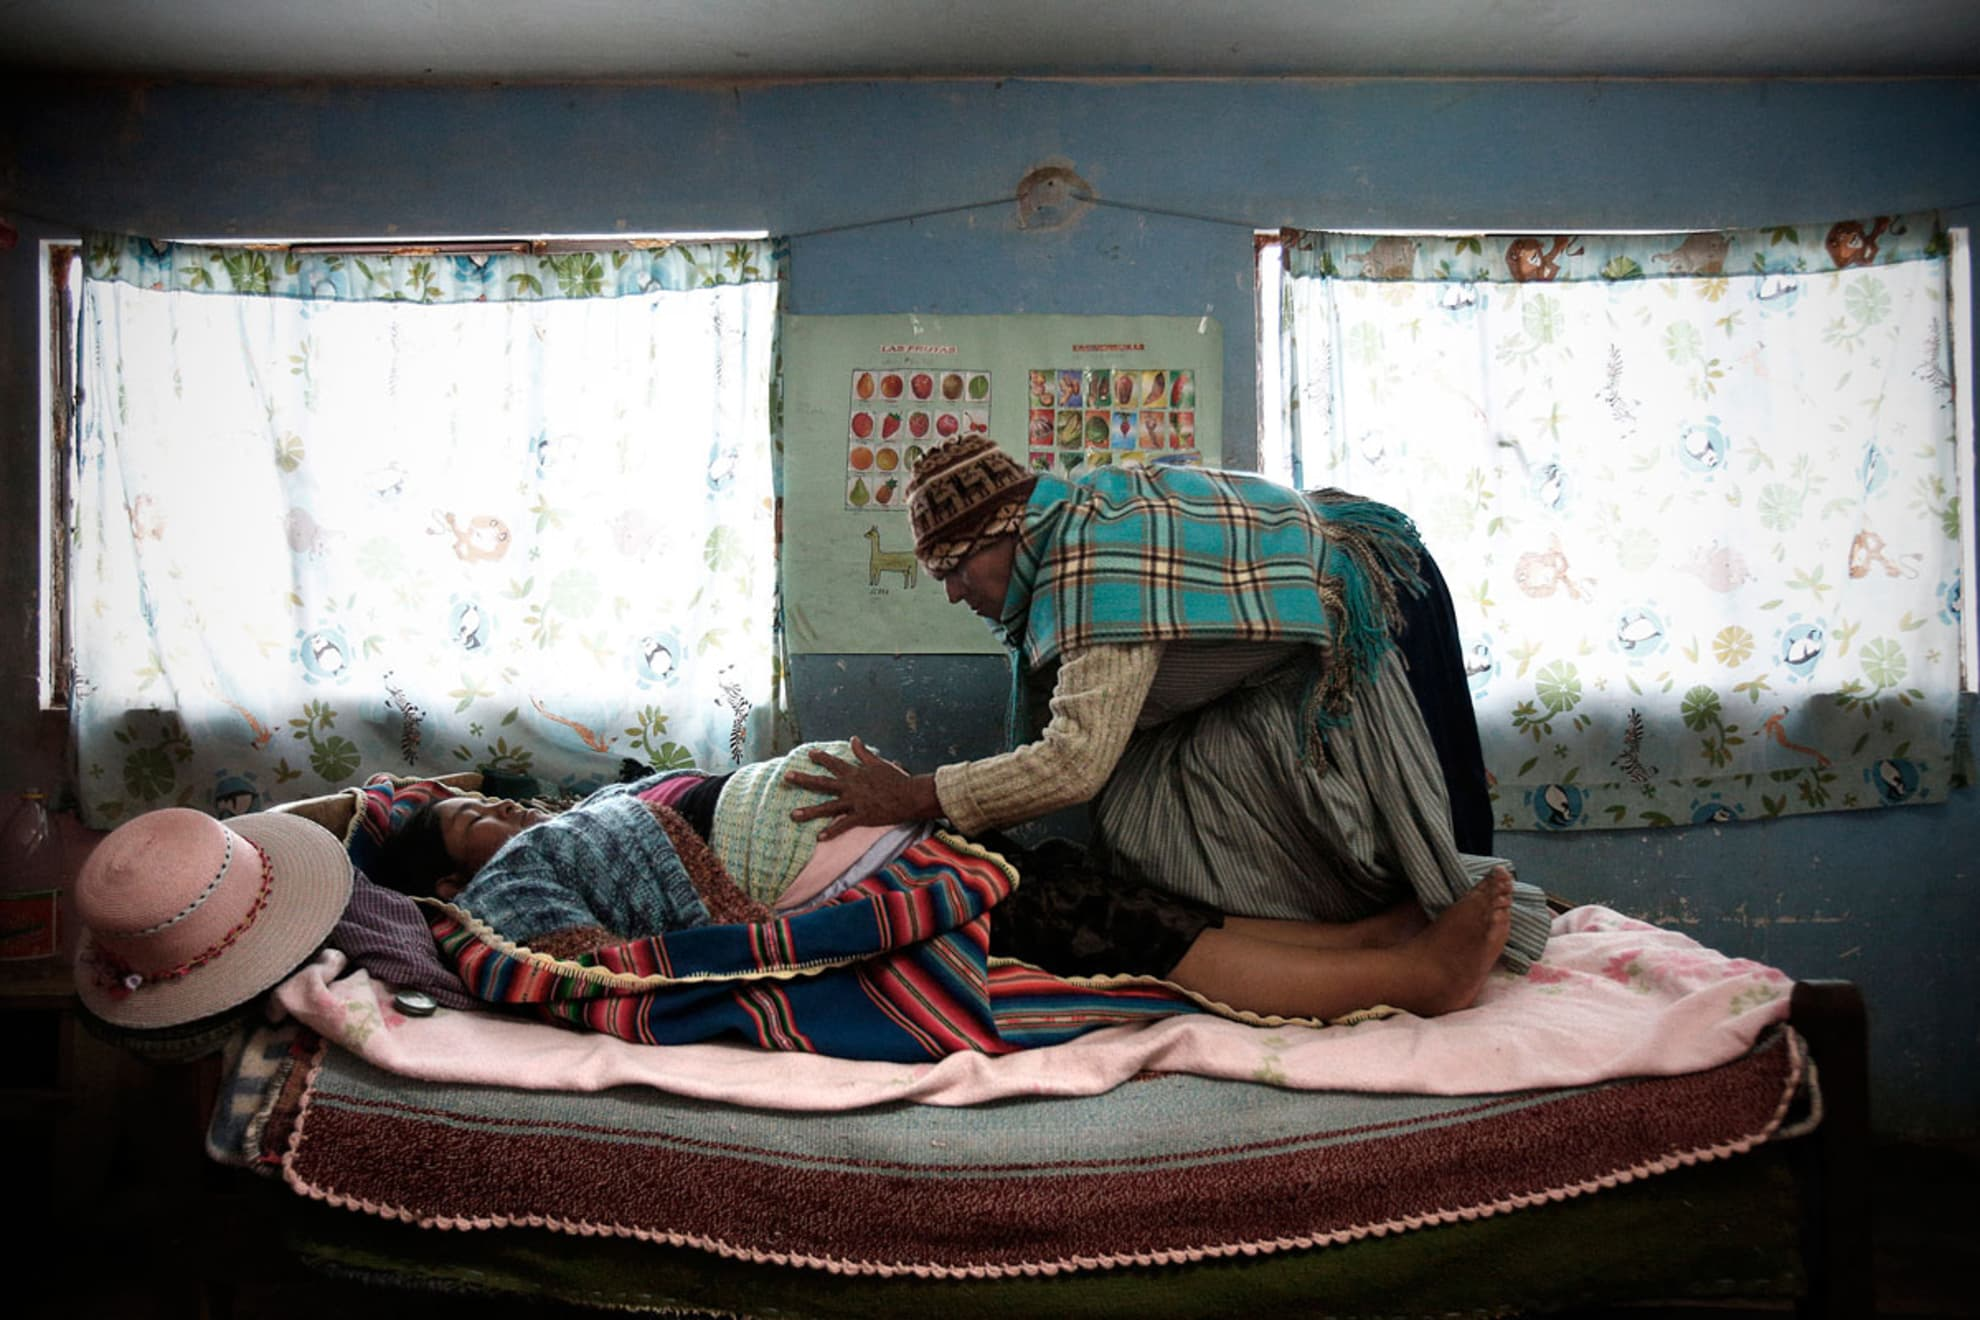 The midwife Leonarda Quispe Rojas, 60 years old, massages Zenobia Mamani Ramos, 38 years old, 38 weeks pregnant at home.